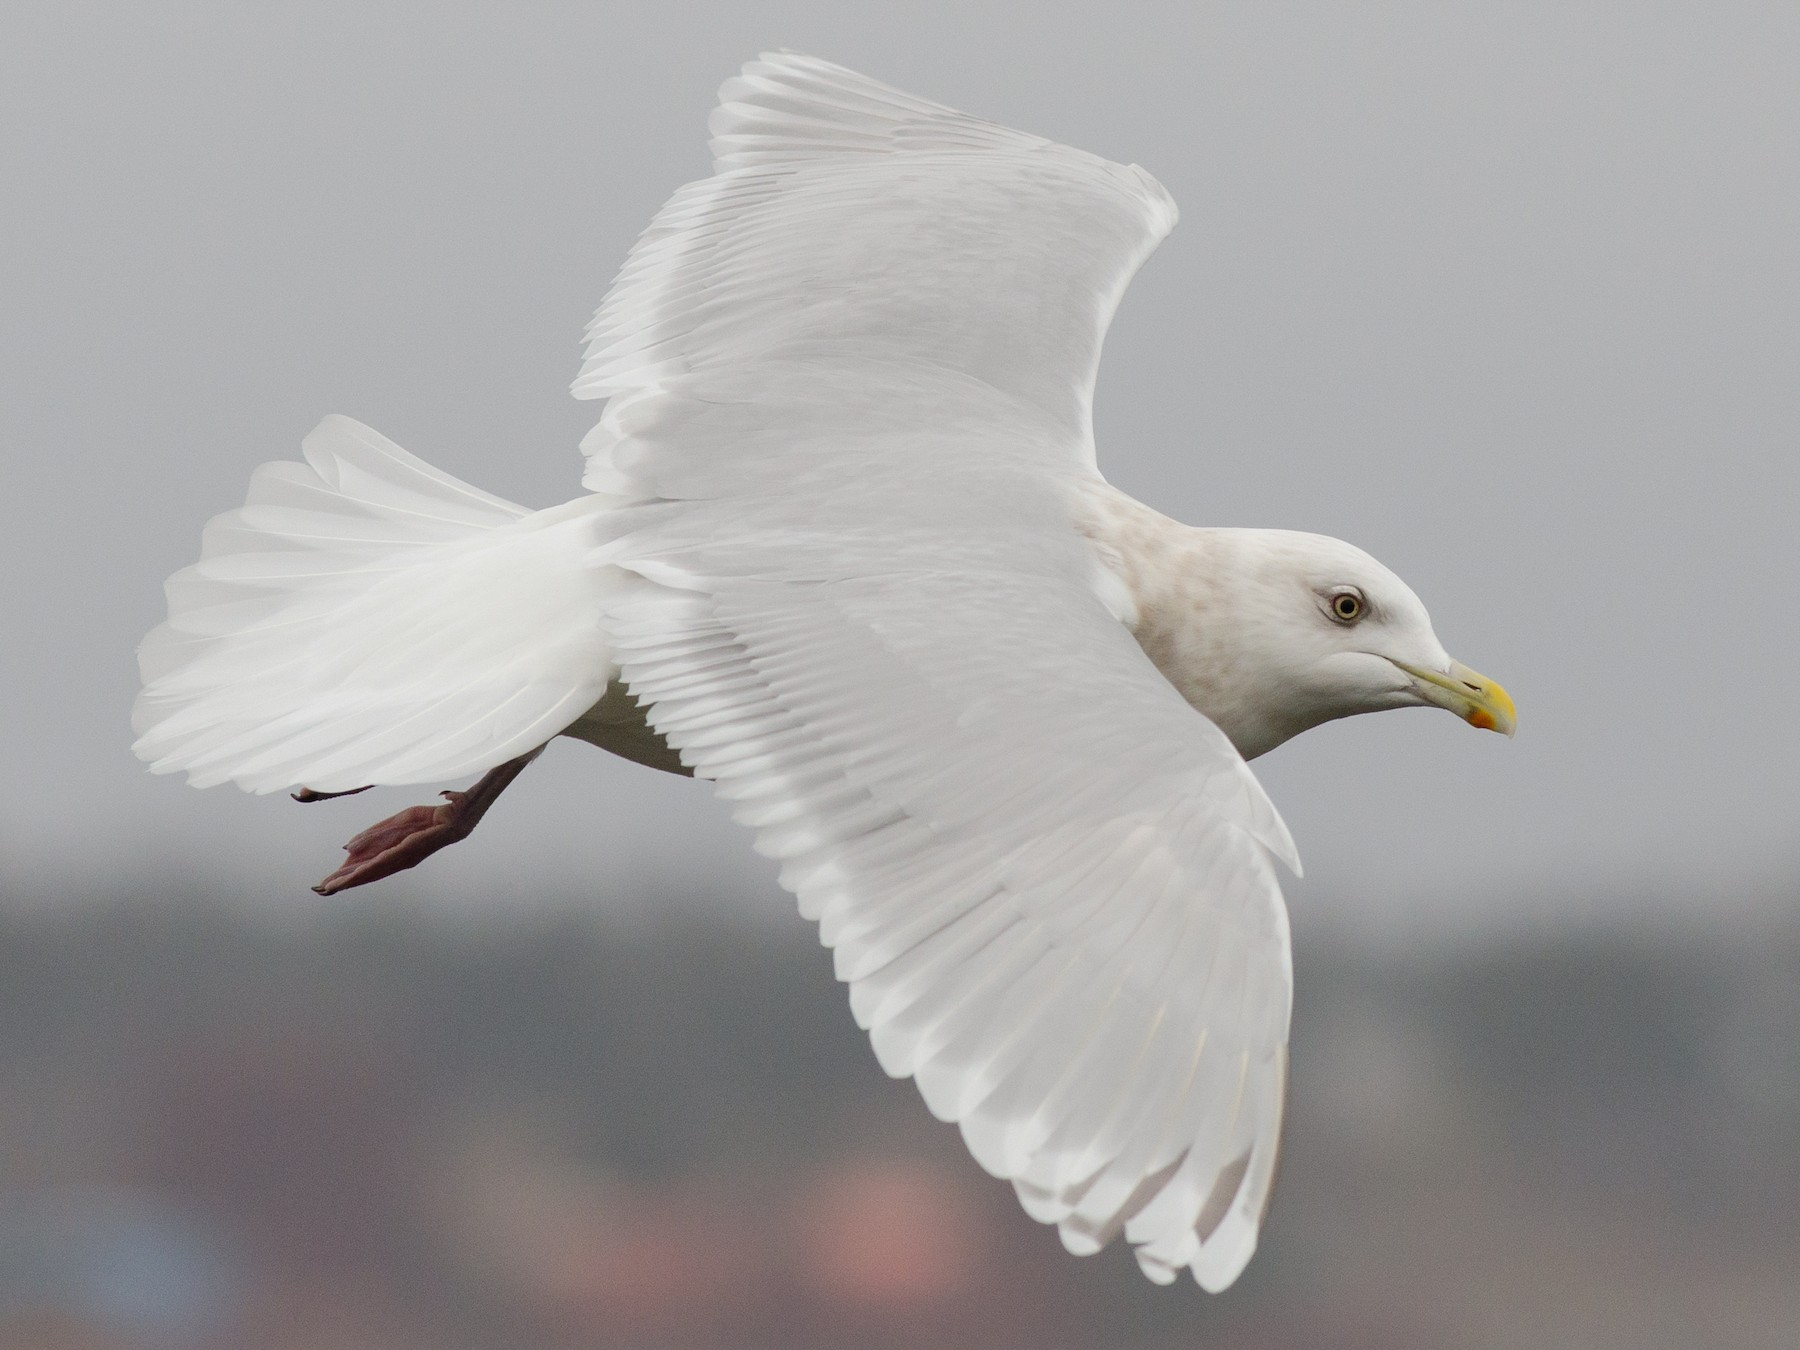 Iceland Gull - Alix d'Entremont